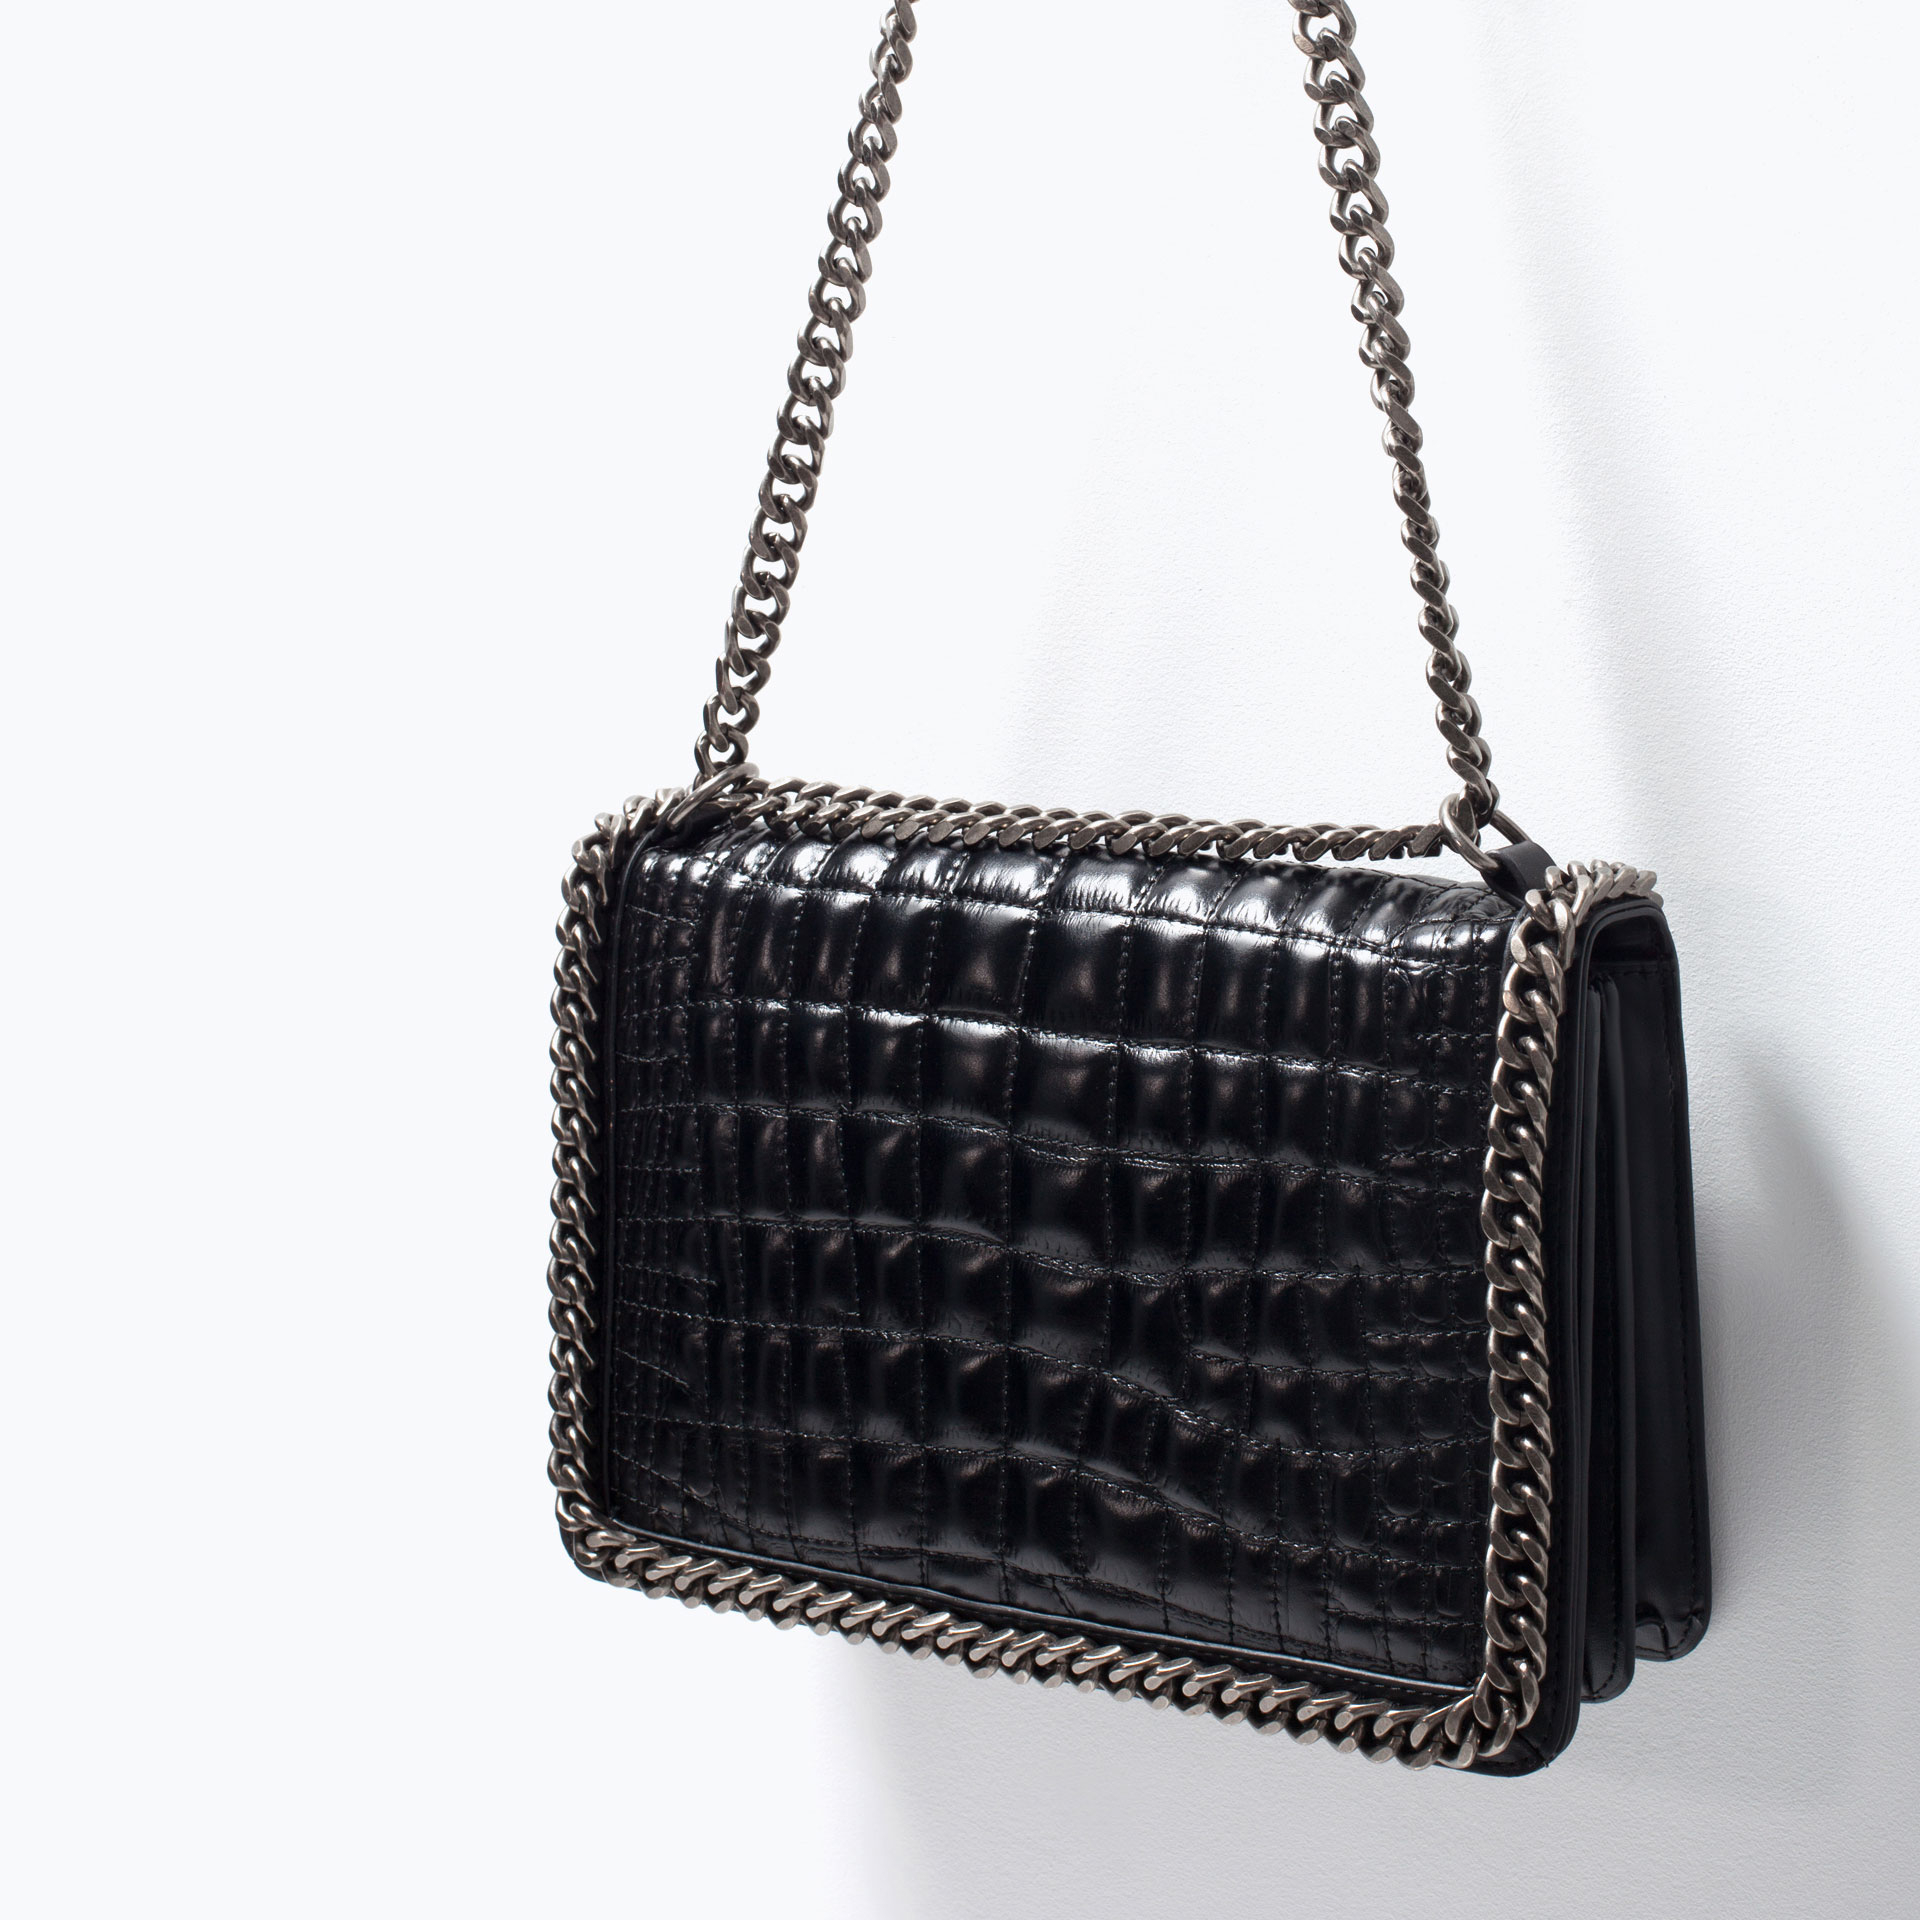 Zara City Chain Trimmed Shoulder Bag In Black Lyst